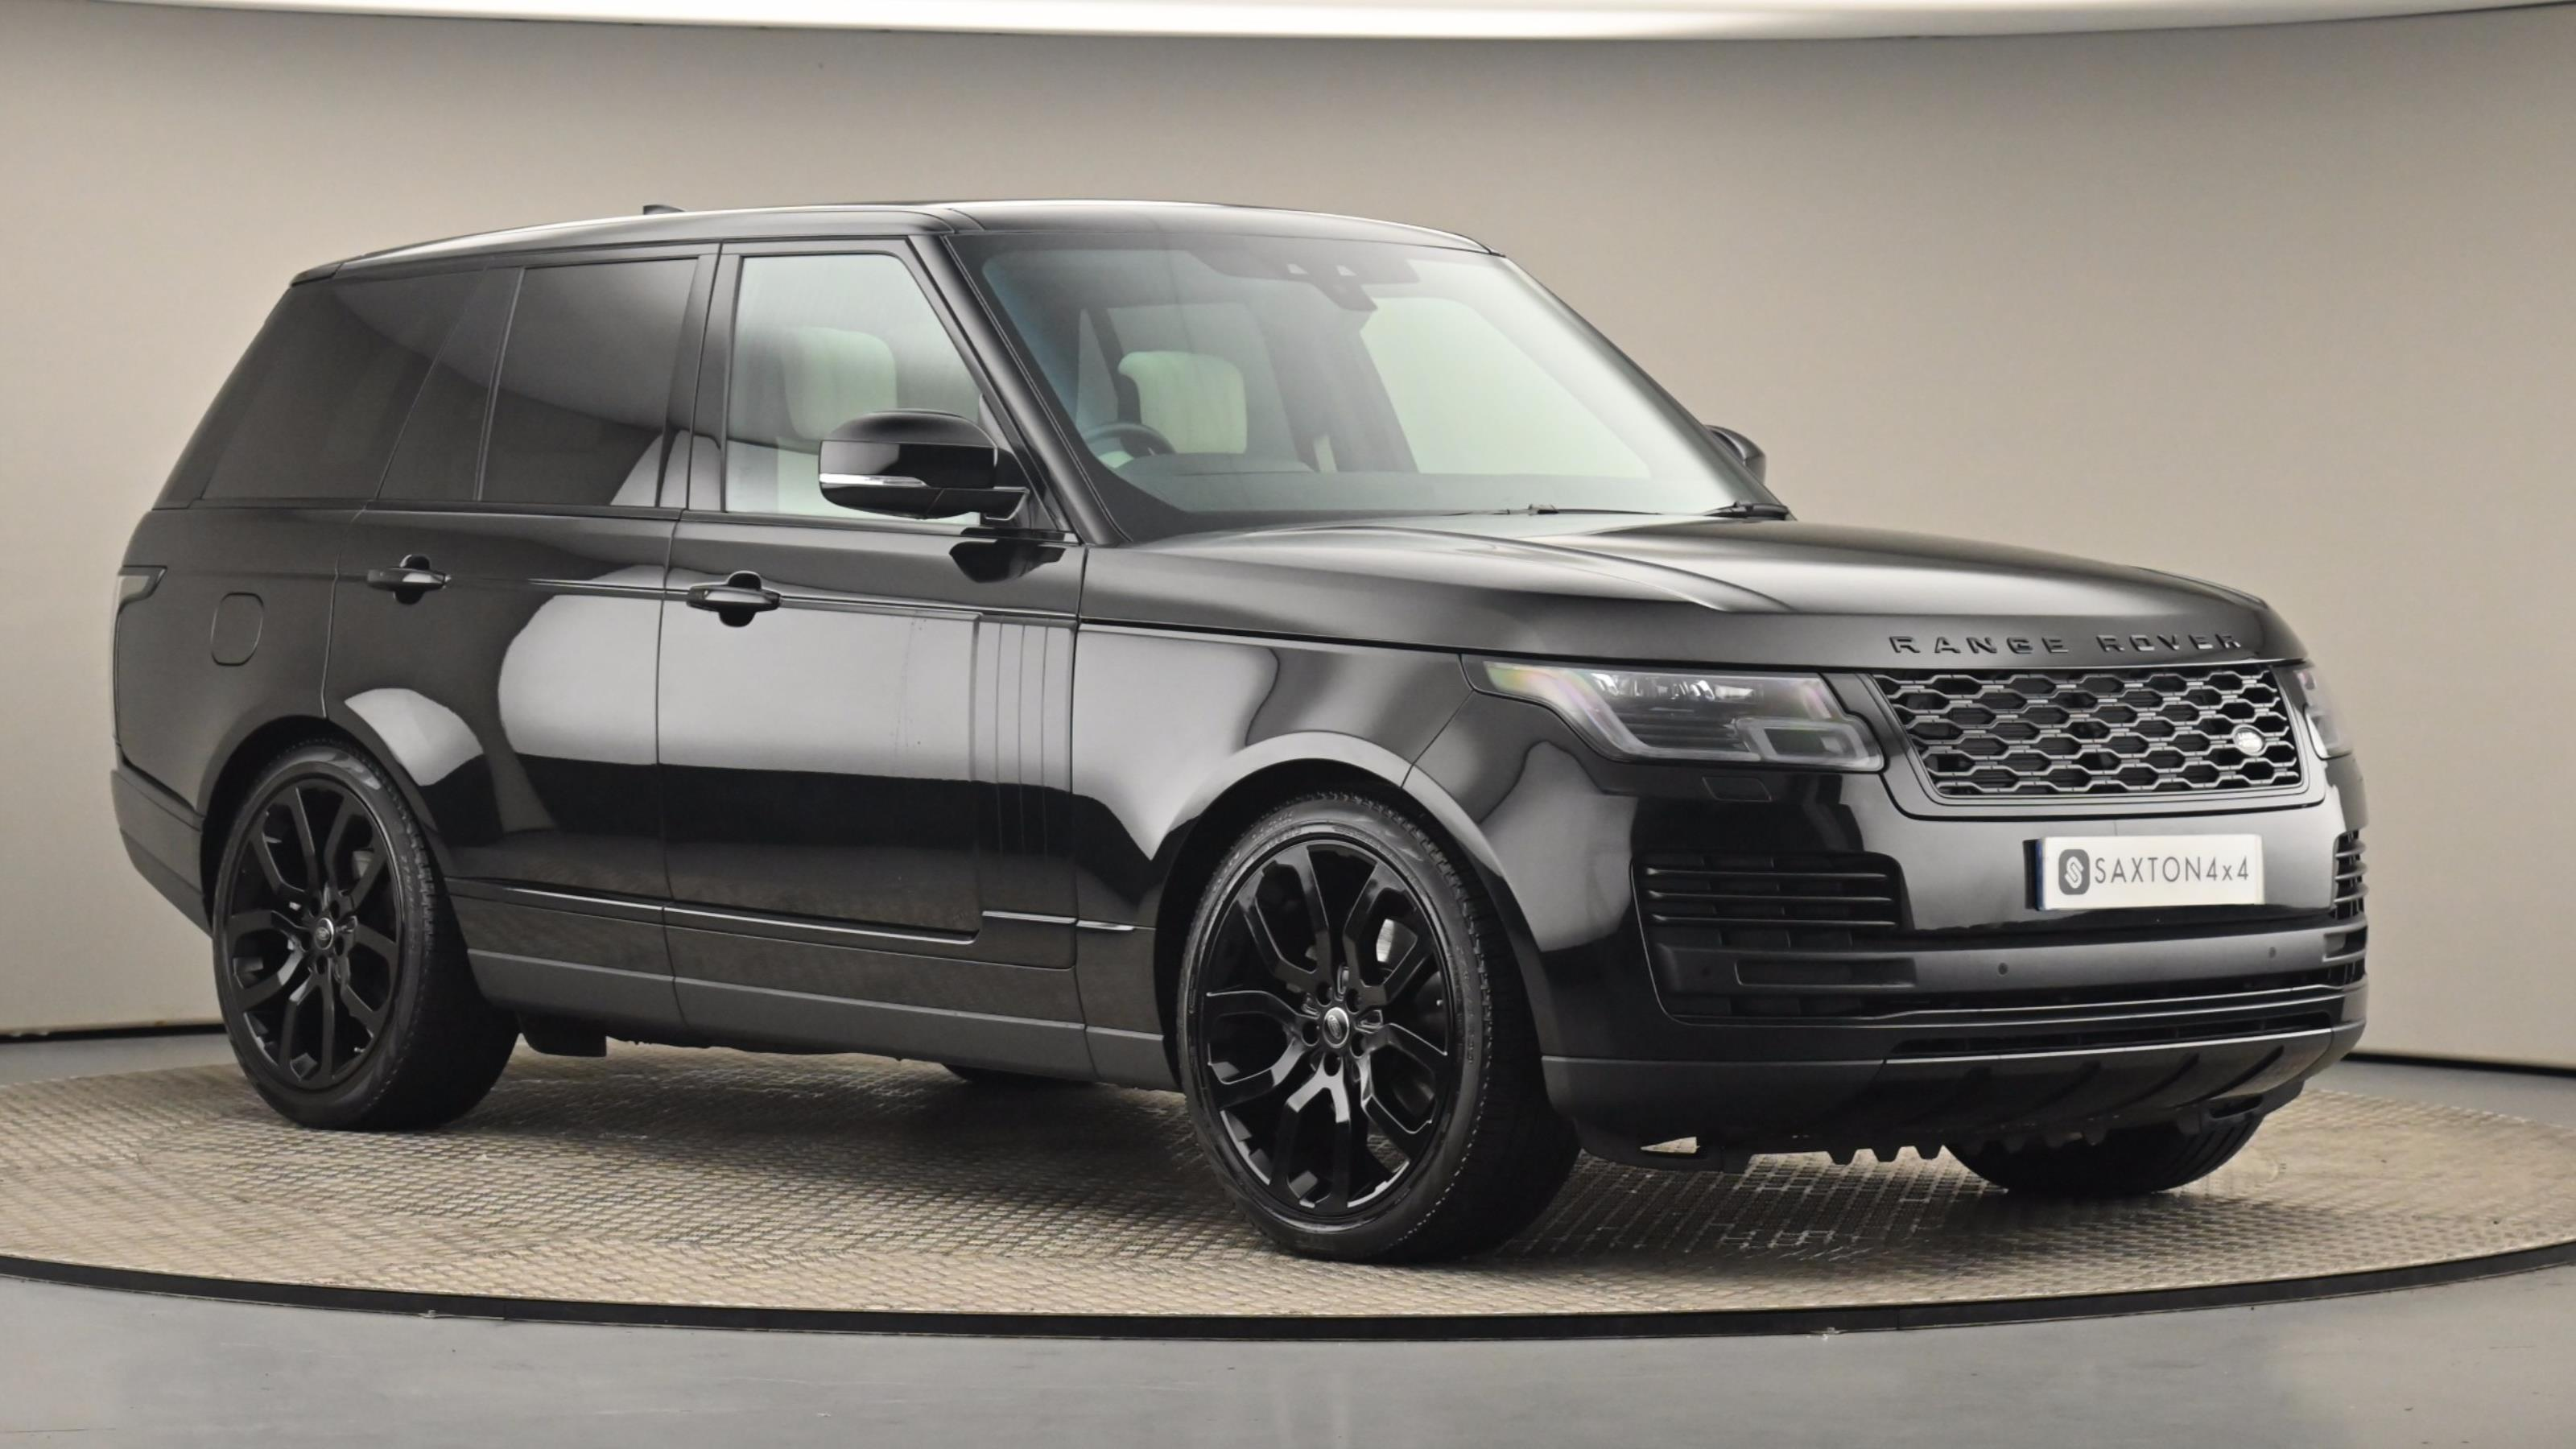 Used 2019 Land Rover RANGE ROVER 3.0 SDV6 Vogue 4dr Auto BLACK at Saxton4x4